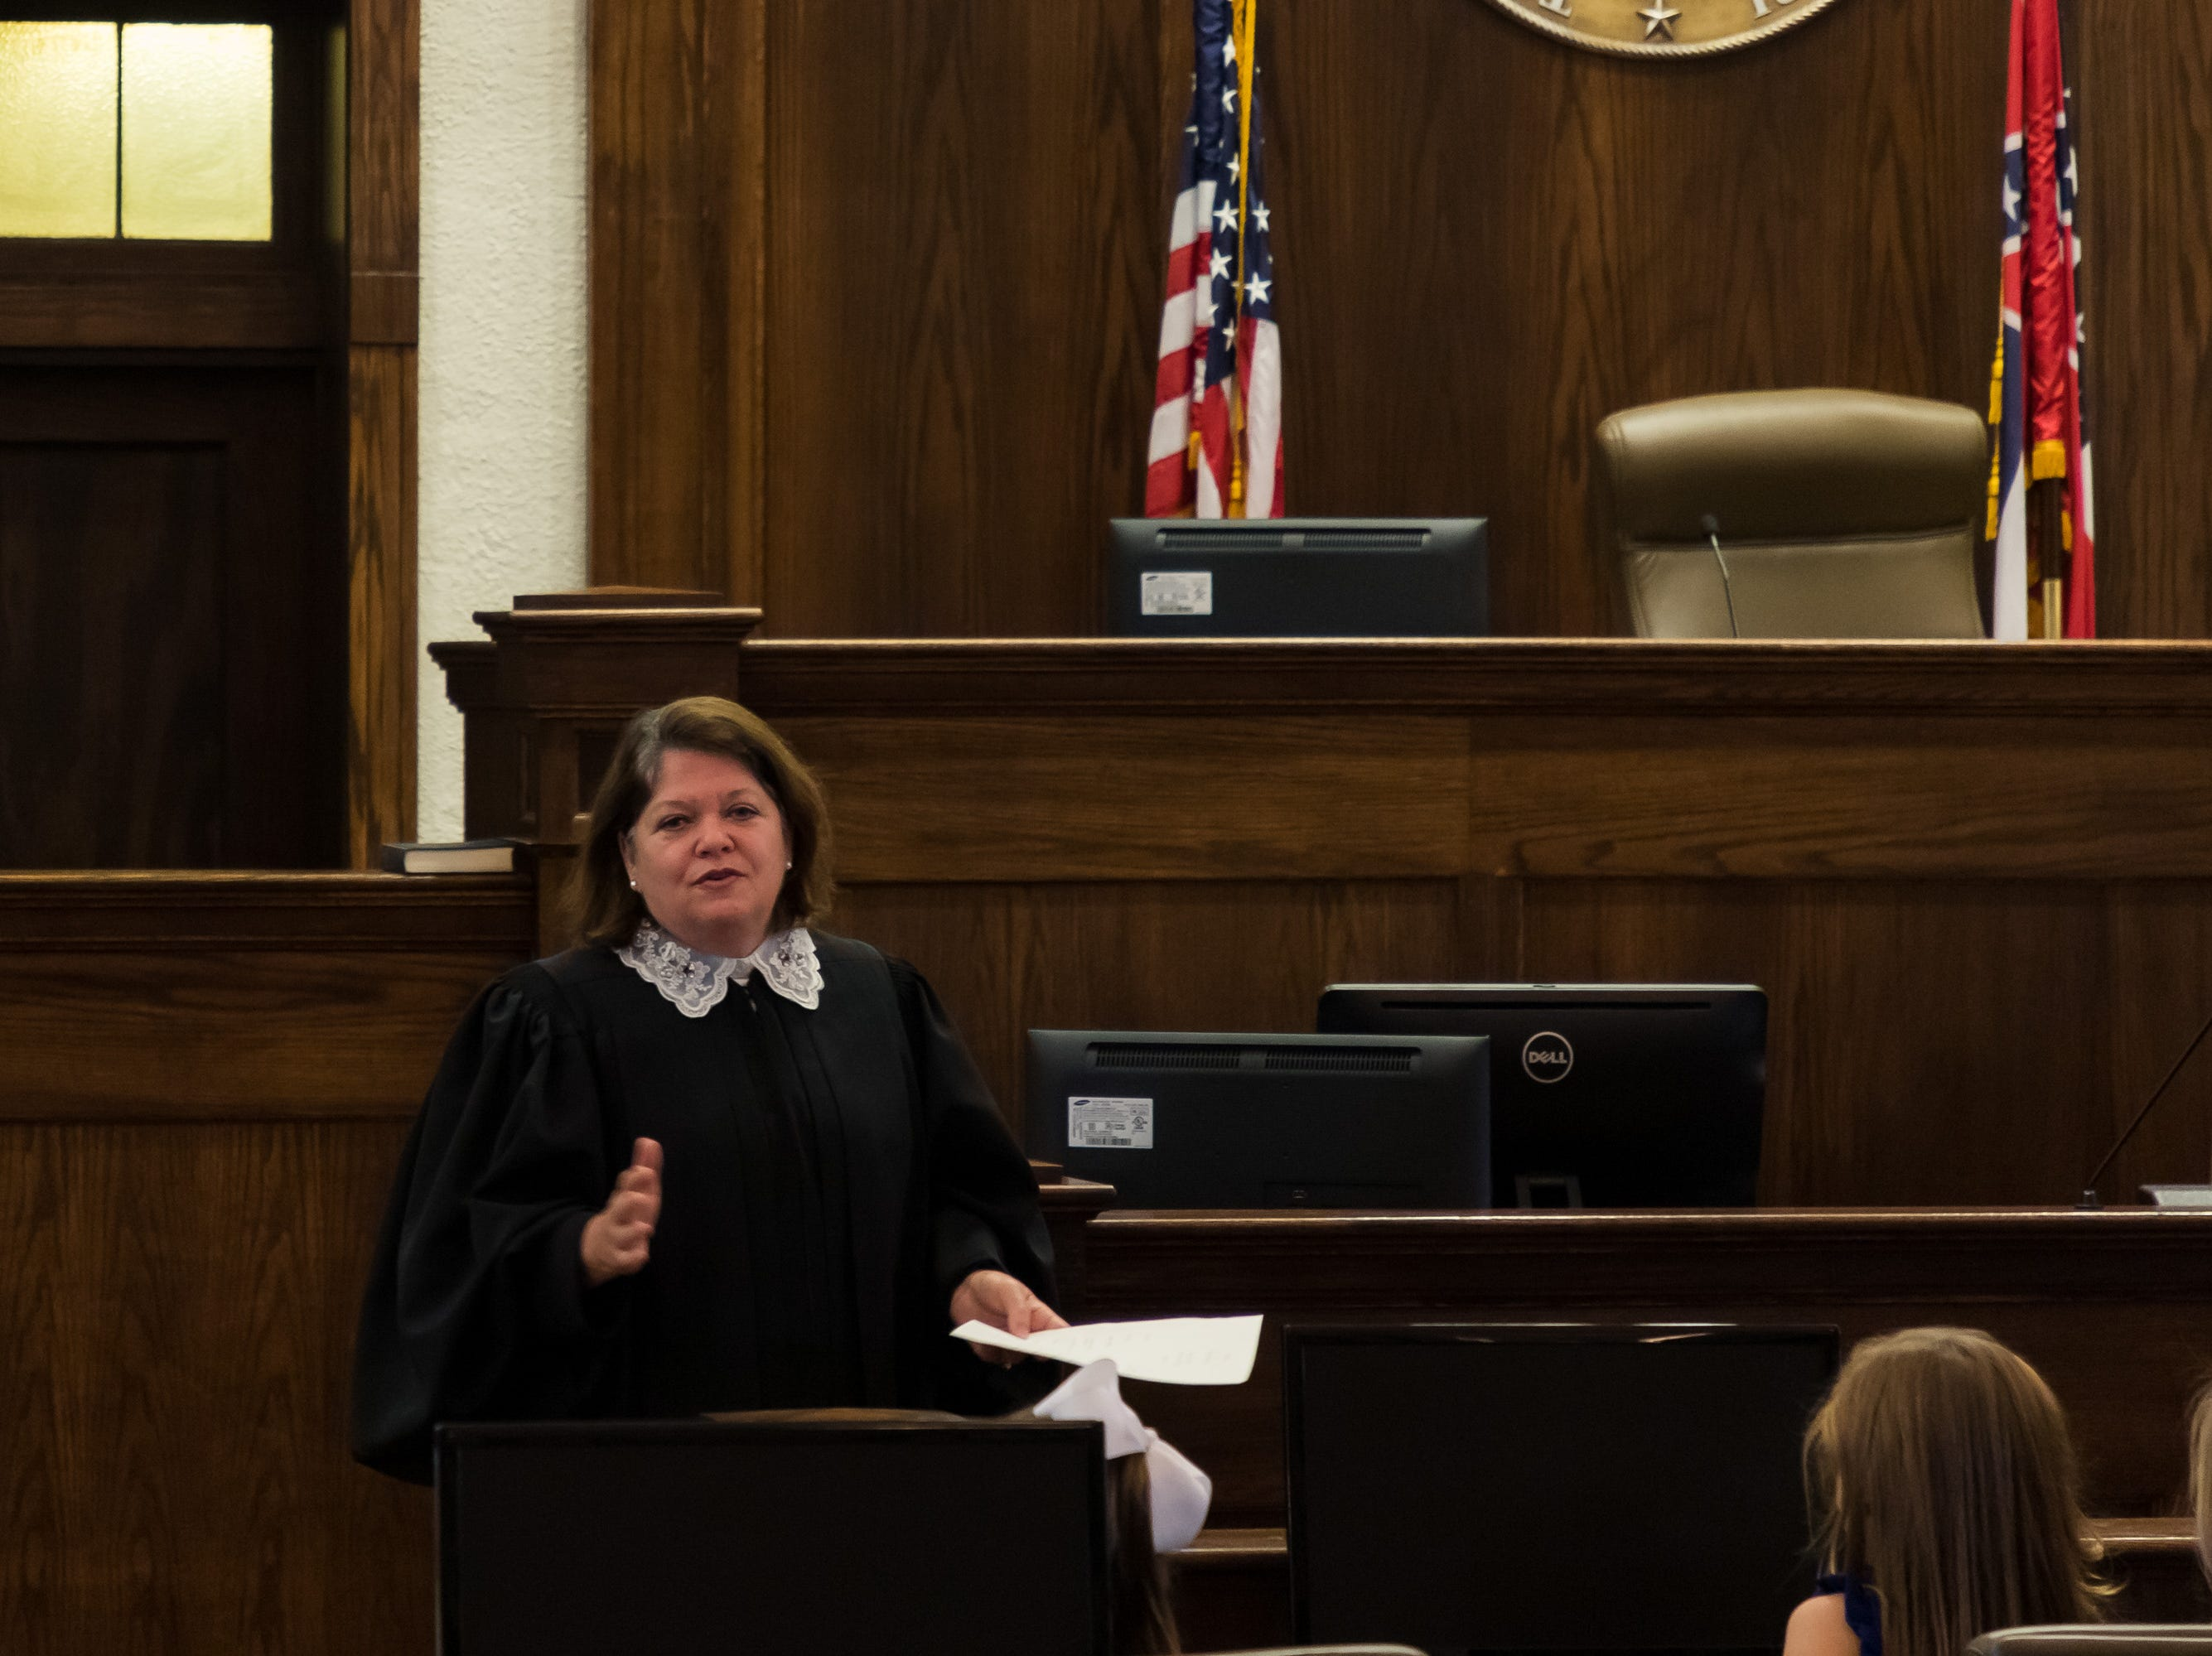 Mississippi Supreme Court Justice Dawn Beam welcomes the assembled crowd to Brad Touchstone's investiture ceremony at Lamar County Courthouse in Purvis on Wednesday, Jan. 2, 2019.